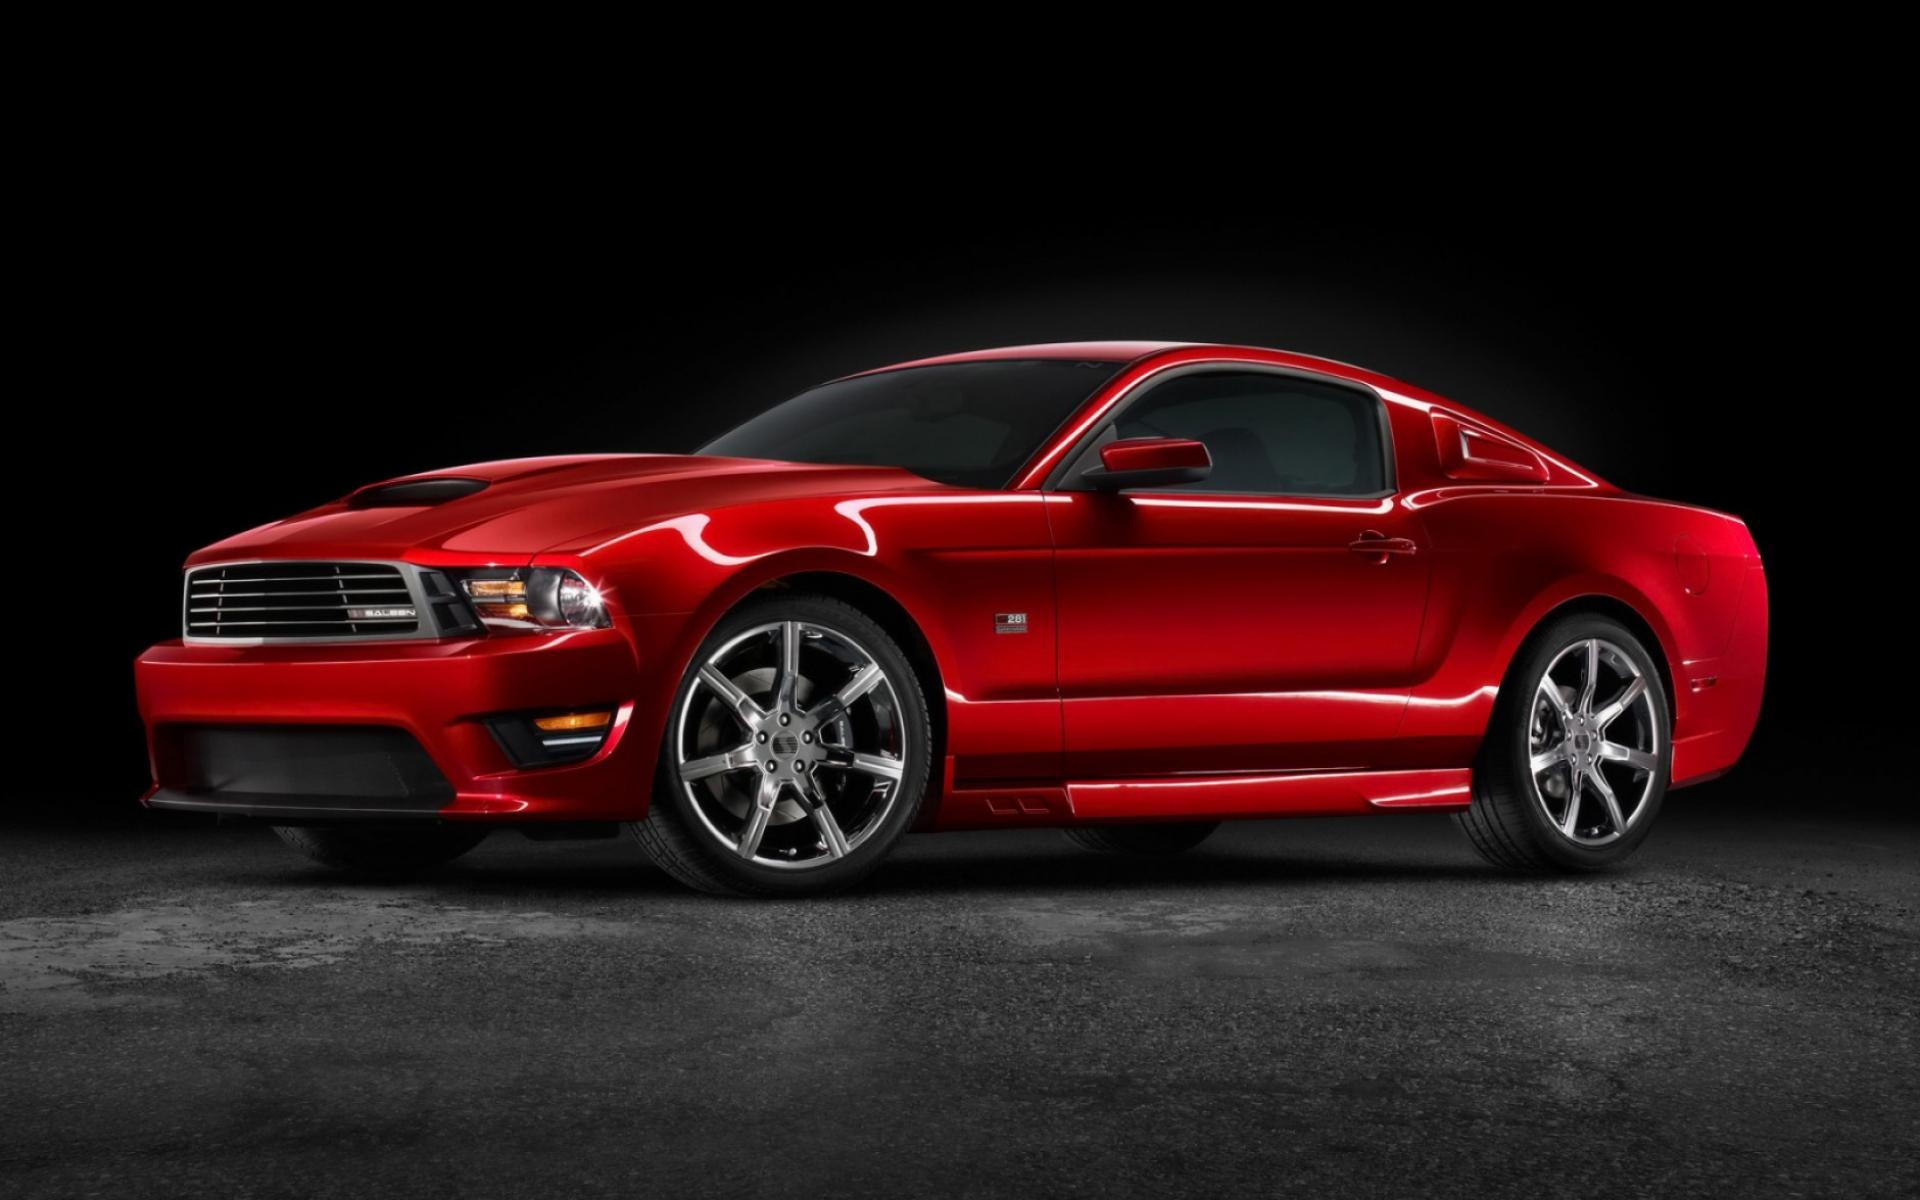 Обои Ford Mustang S281 1920x1200